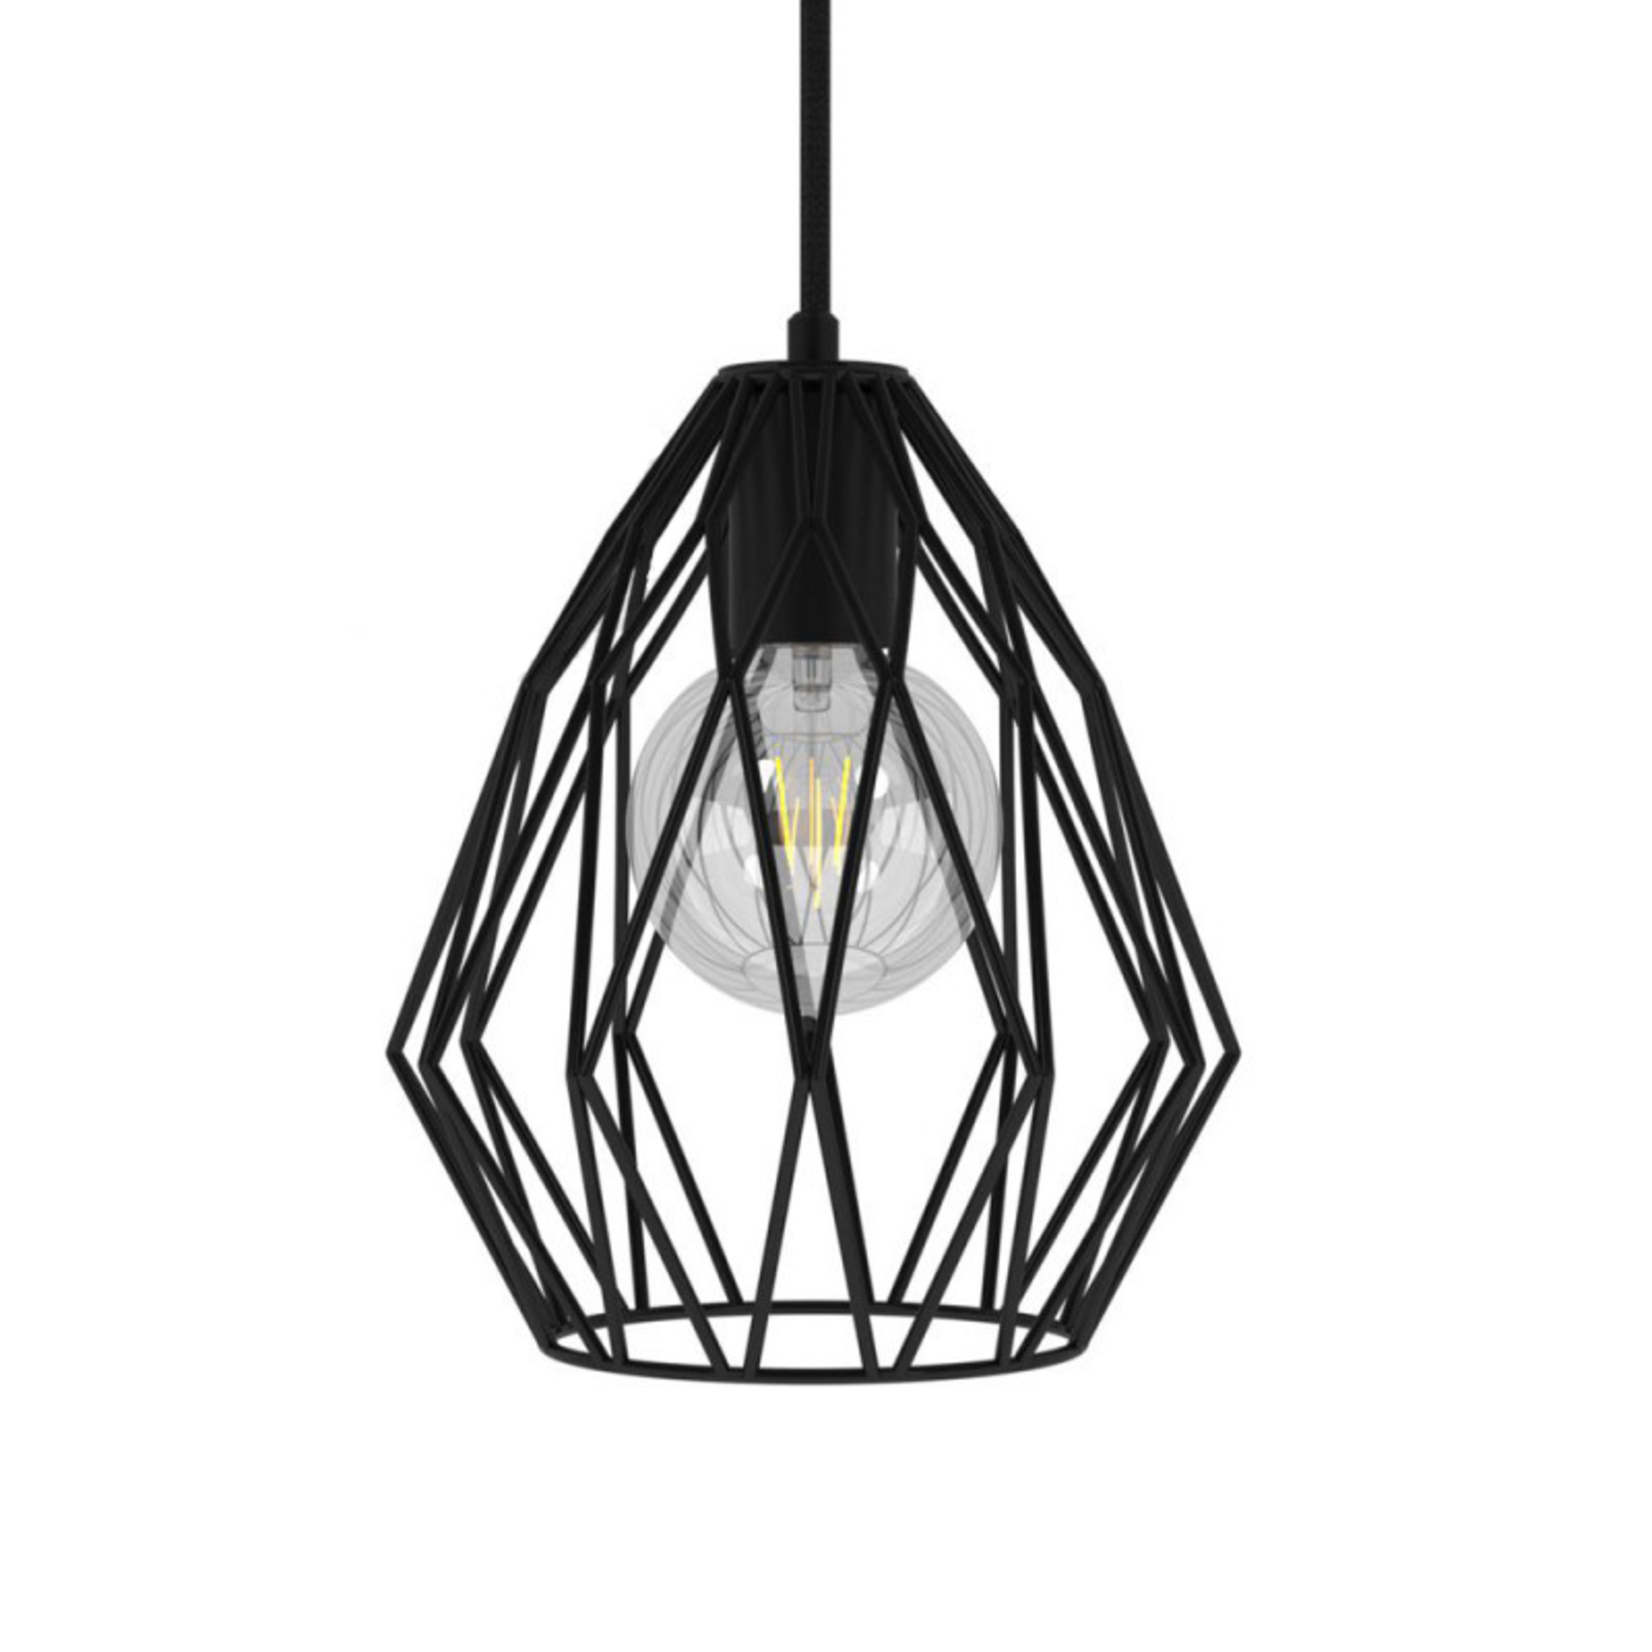 CCIT Gem Naked Lampshade - Black metal with E27 lamp holder